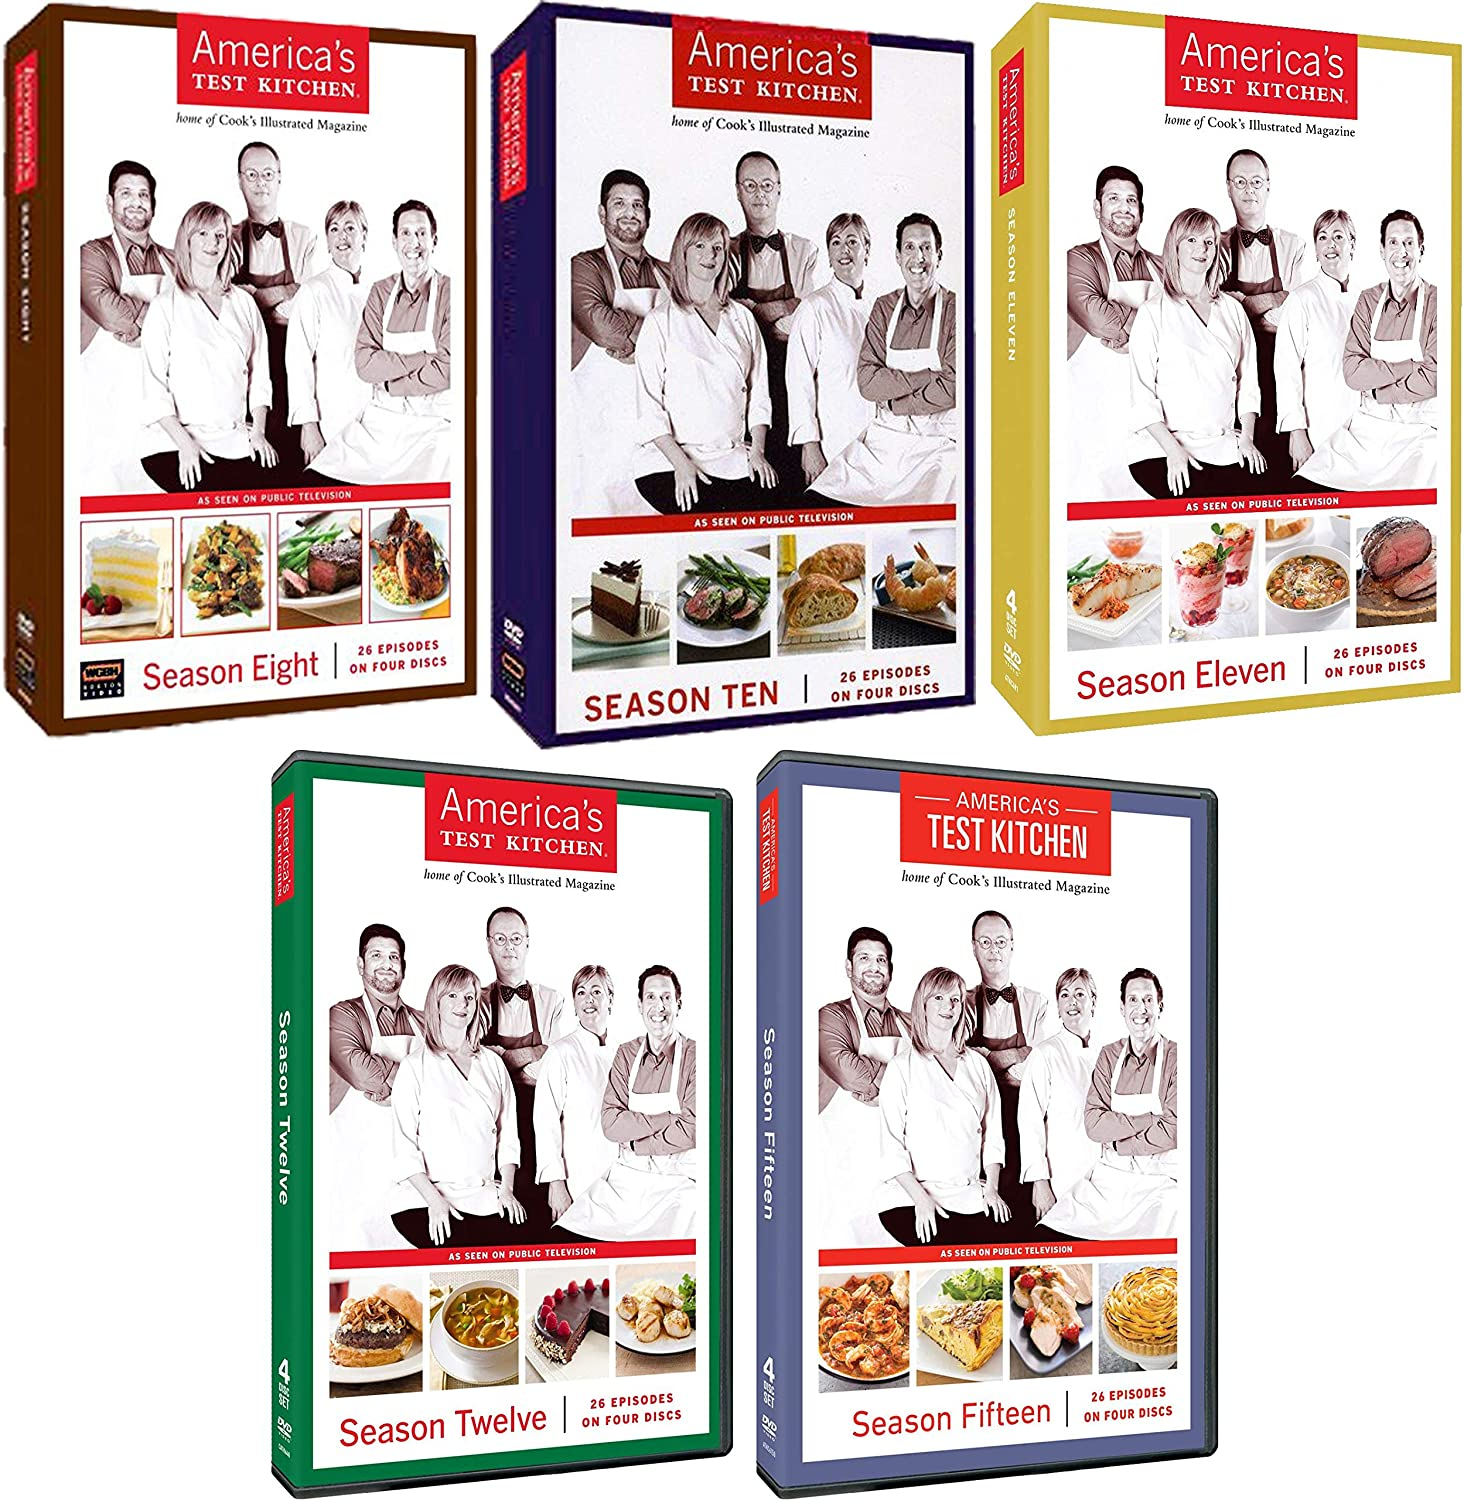 America's Test Kitchen: Cooking Series Seasons 8 10 11 12 15 DVD Collection